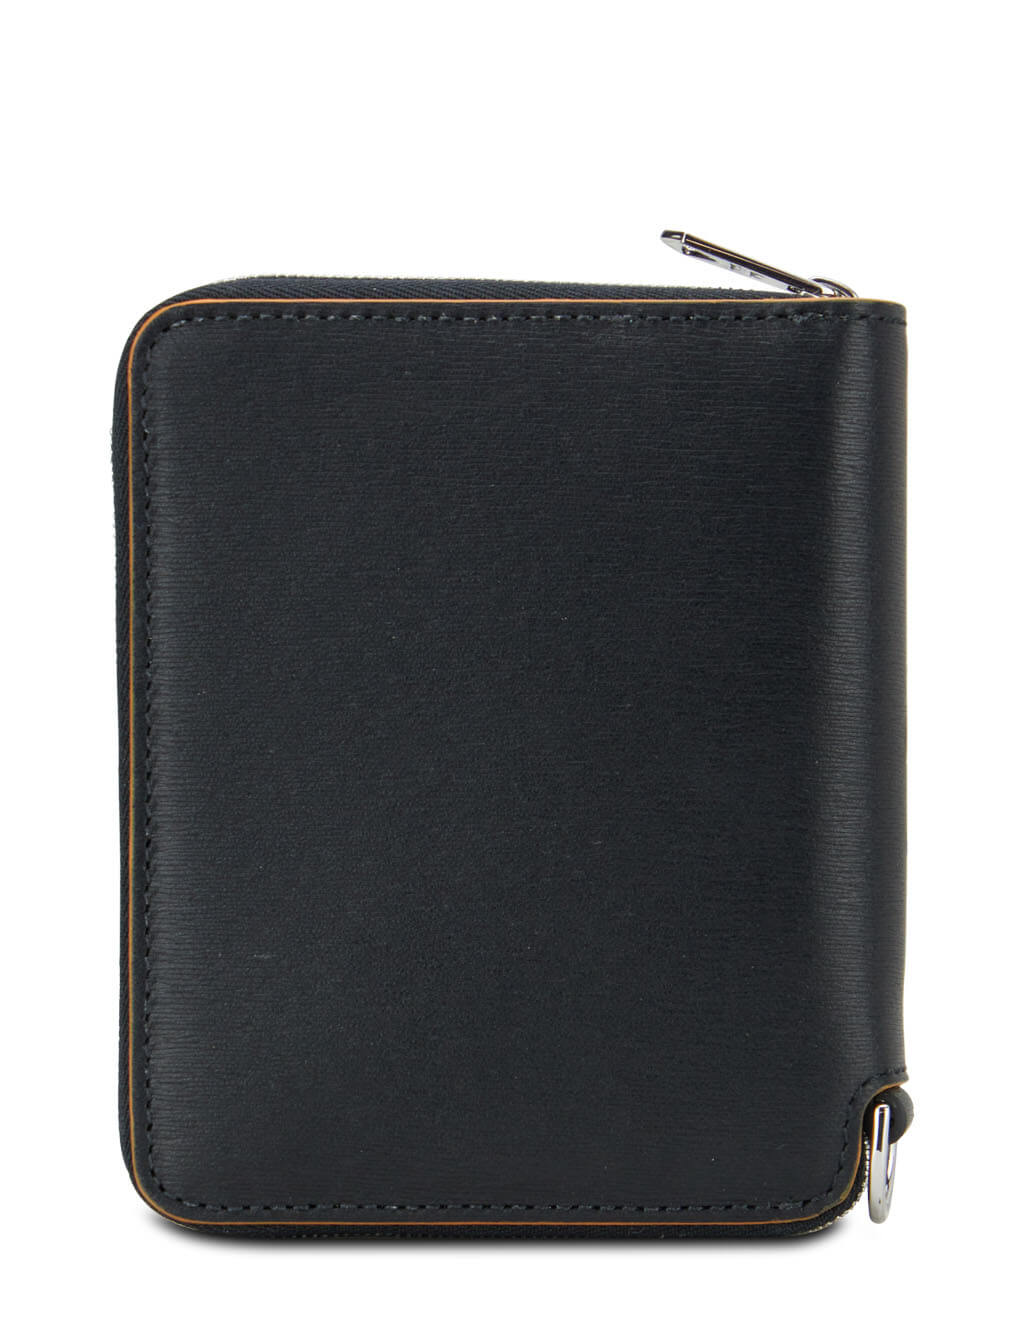 Men's Paul Smith Contrast Interior Zip-Around Wallet in Black - M1A-6702-FSTRGS-78A